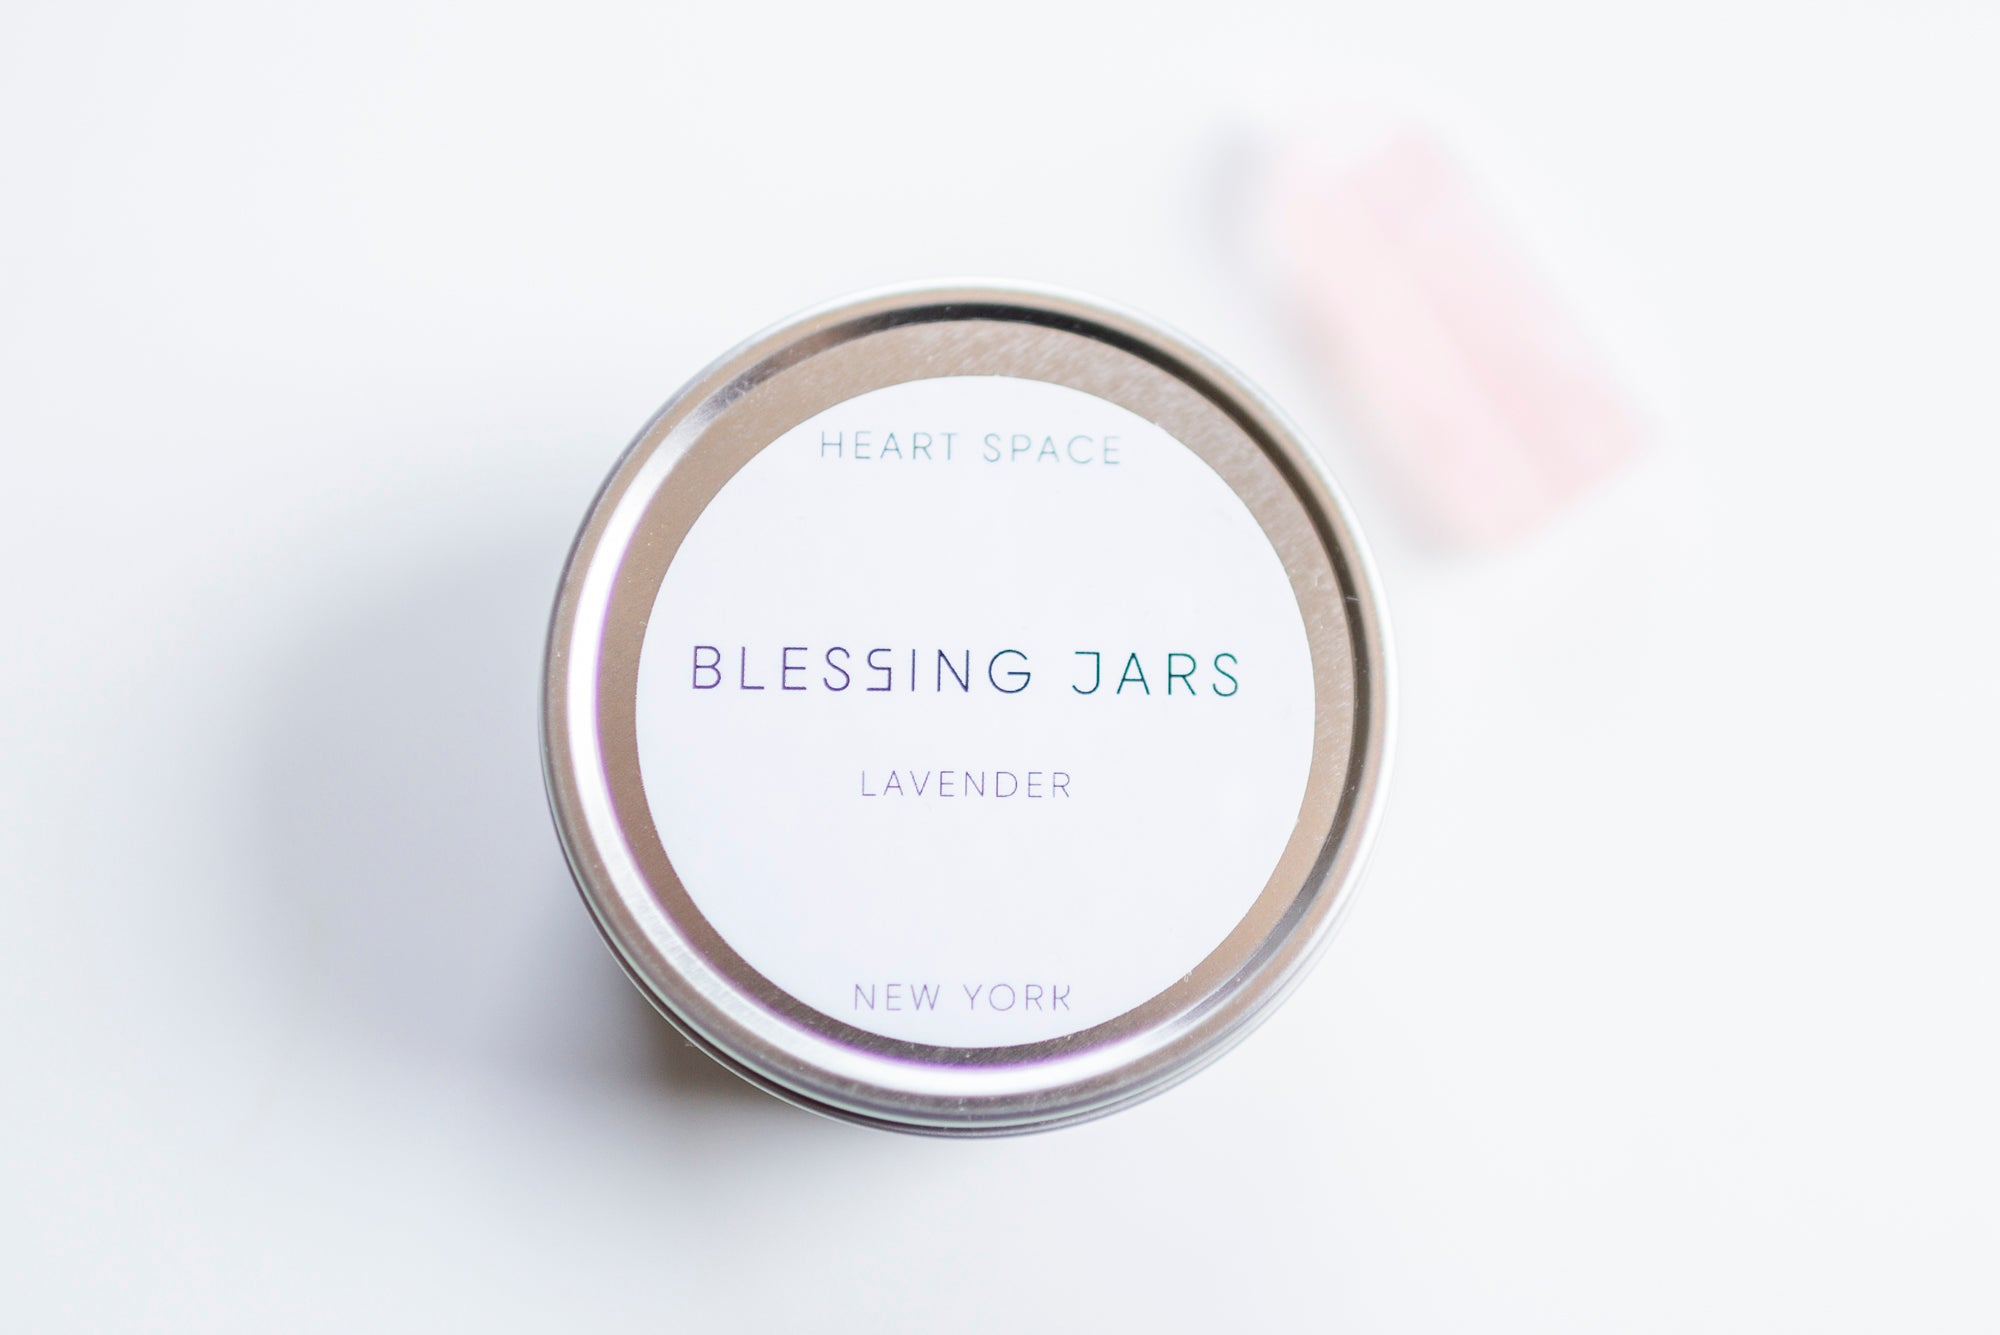 BLESSING JAR. LAVENDER Soy Wax Candle. 8oz